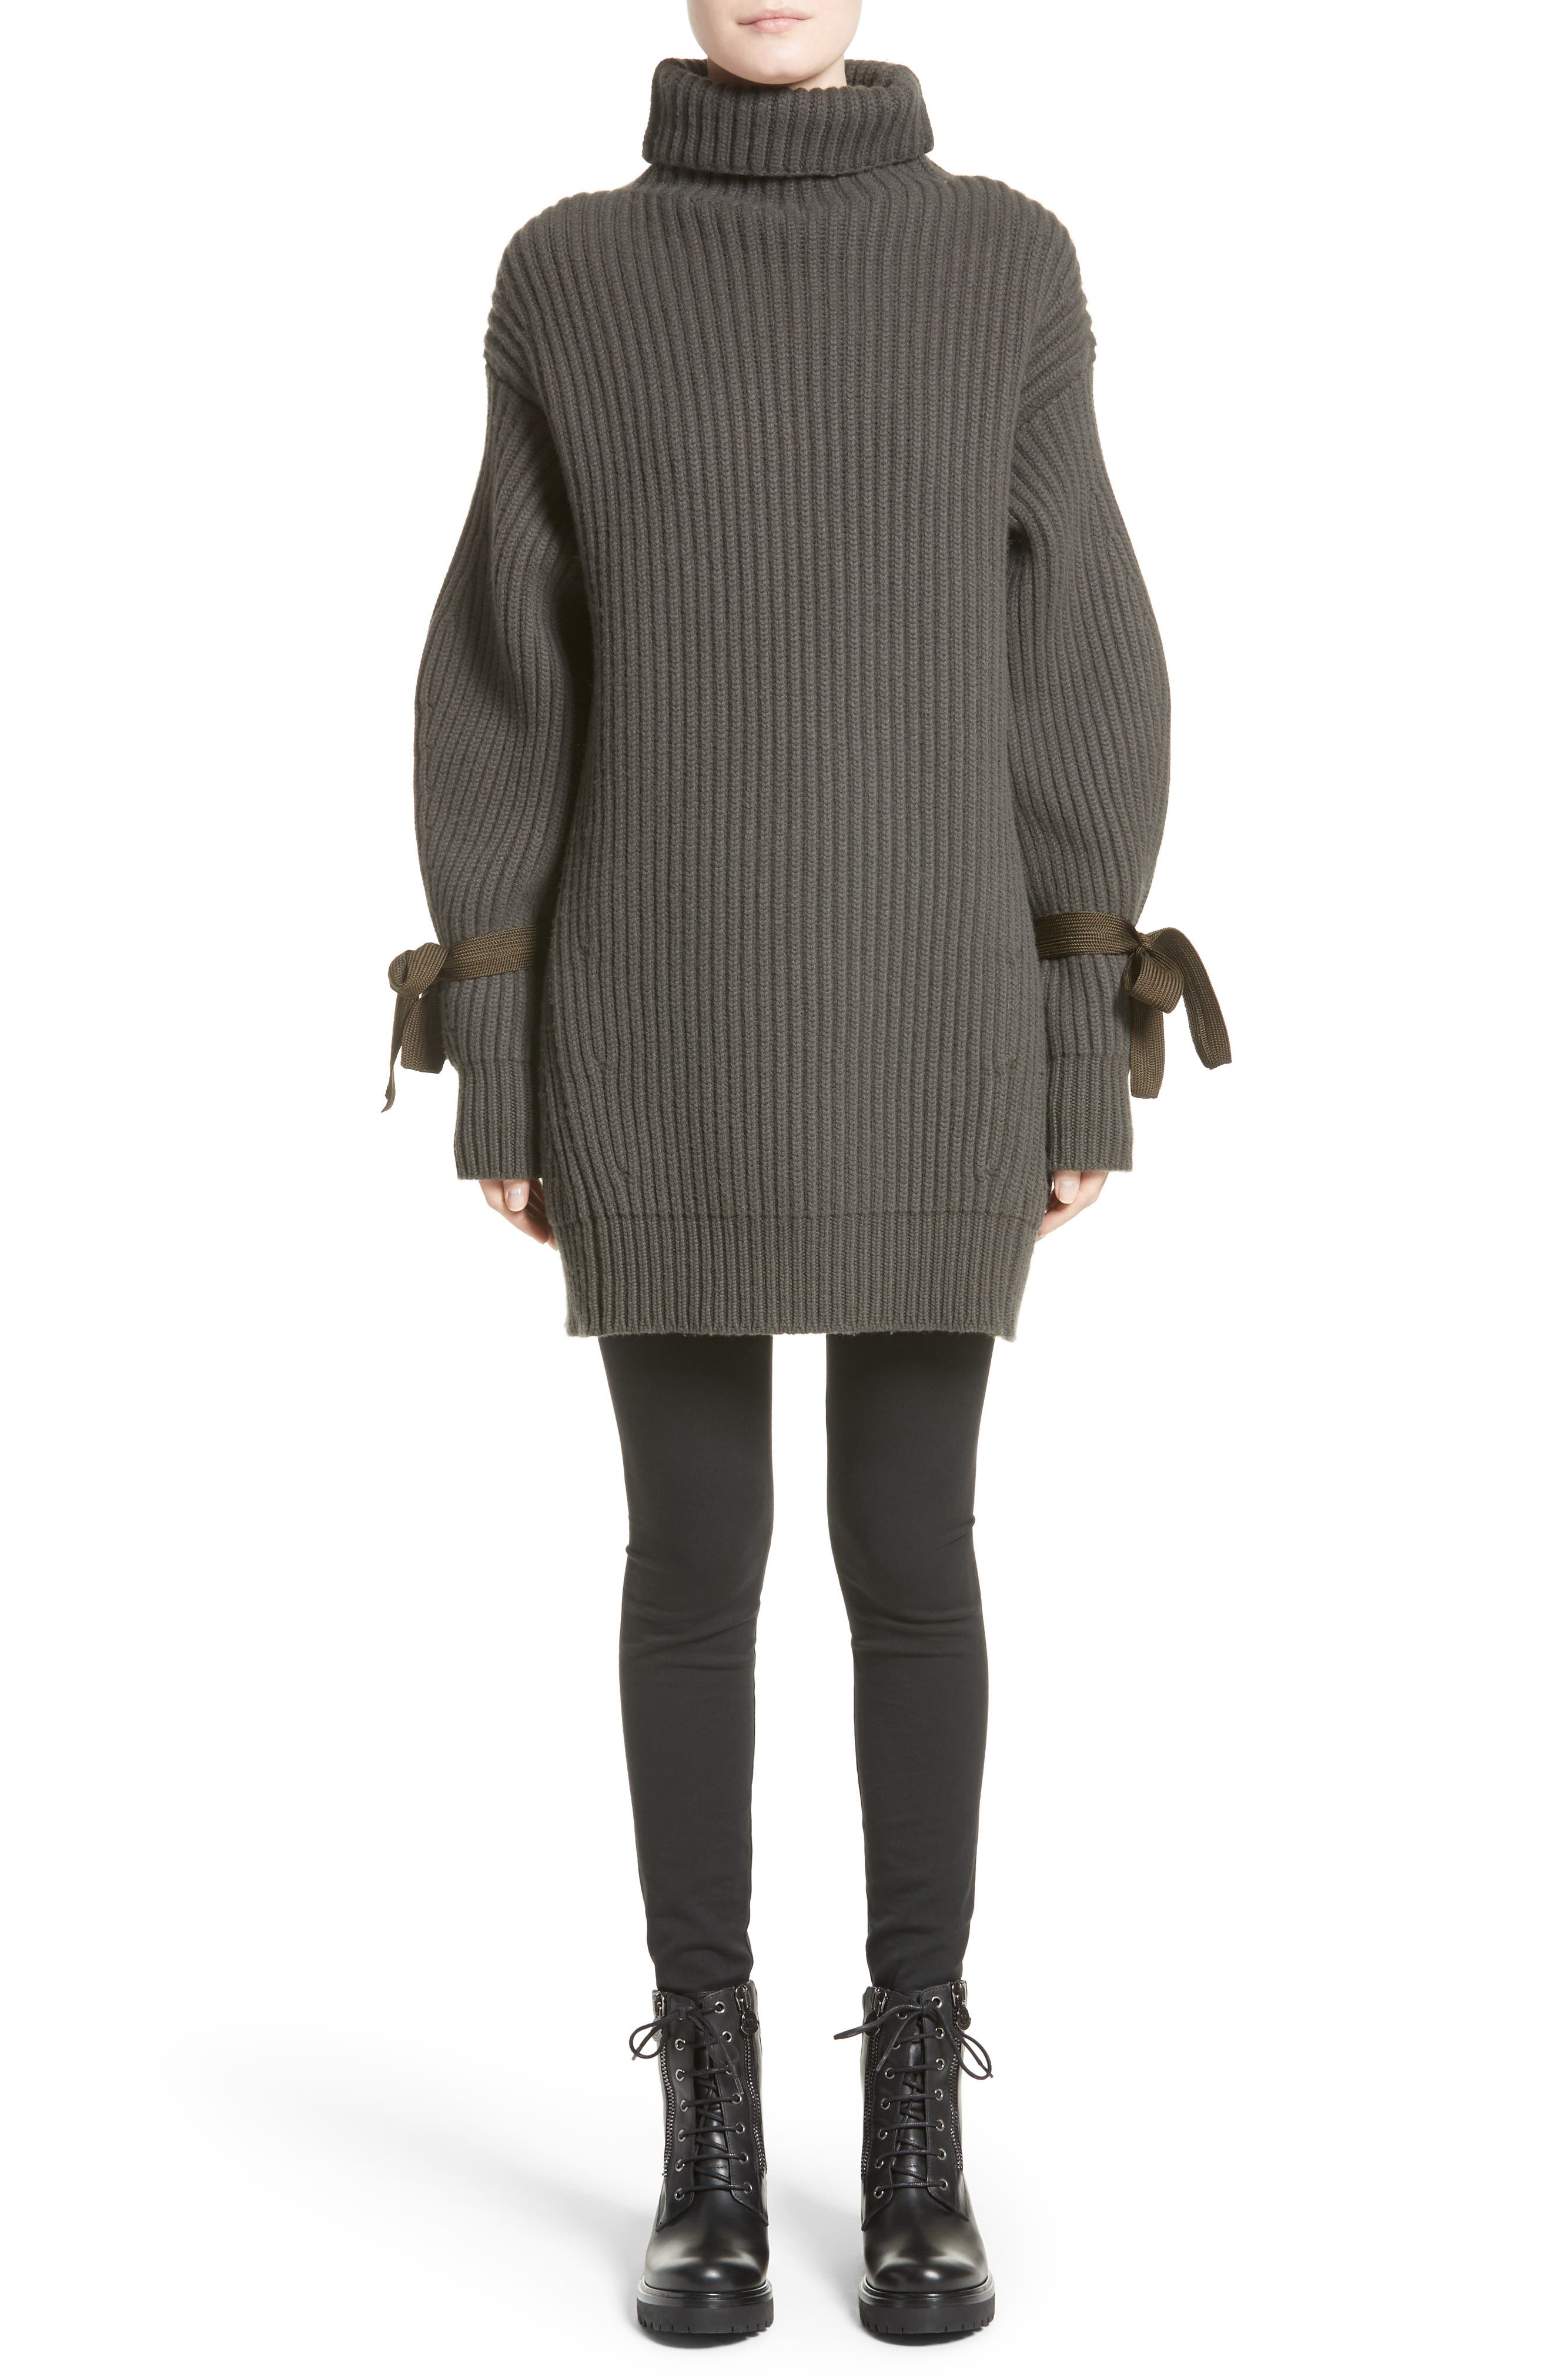 Ciclista Wool & Cashmere Sweater,                             Main thumbnail 1, color,                             307